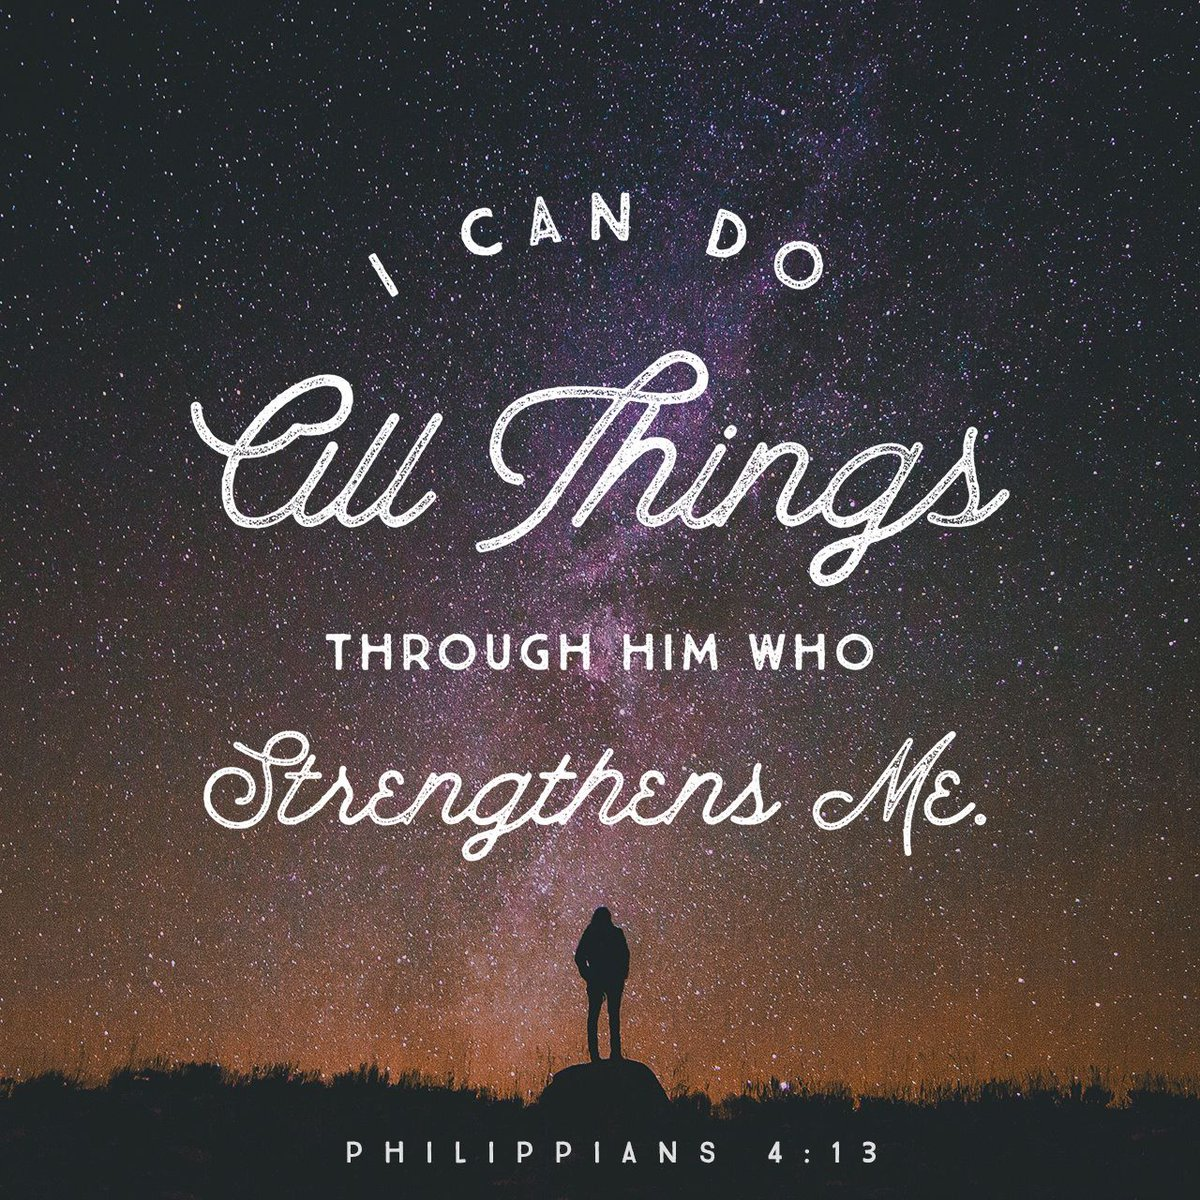 Doing All Things Through Christ - Inspire Me quote